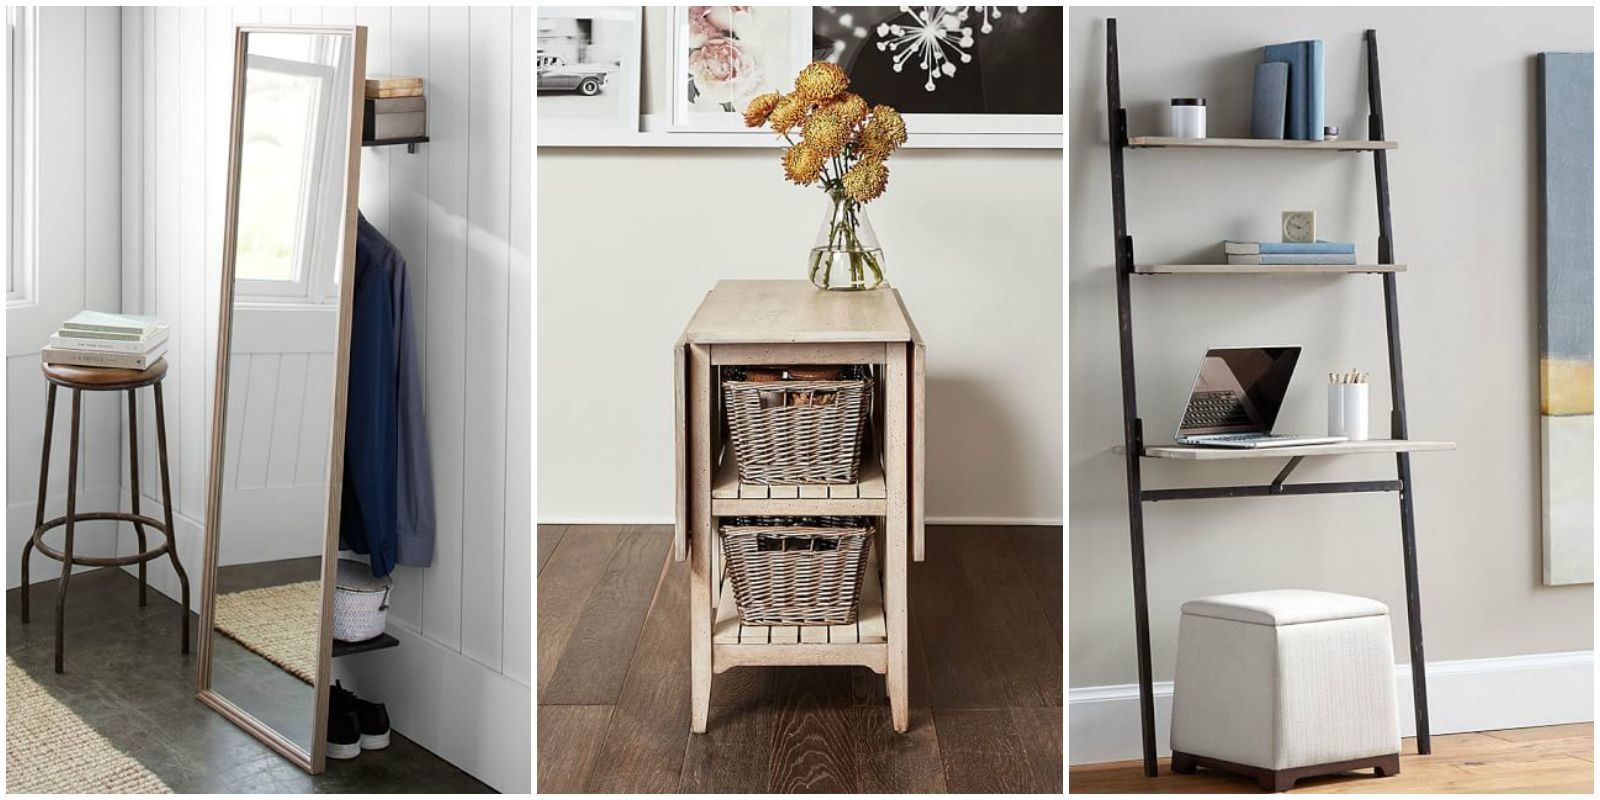 Pottery Barn Launches Small Space Collection   Furniture For Apartments And  Tiny Houses